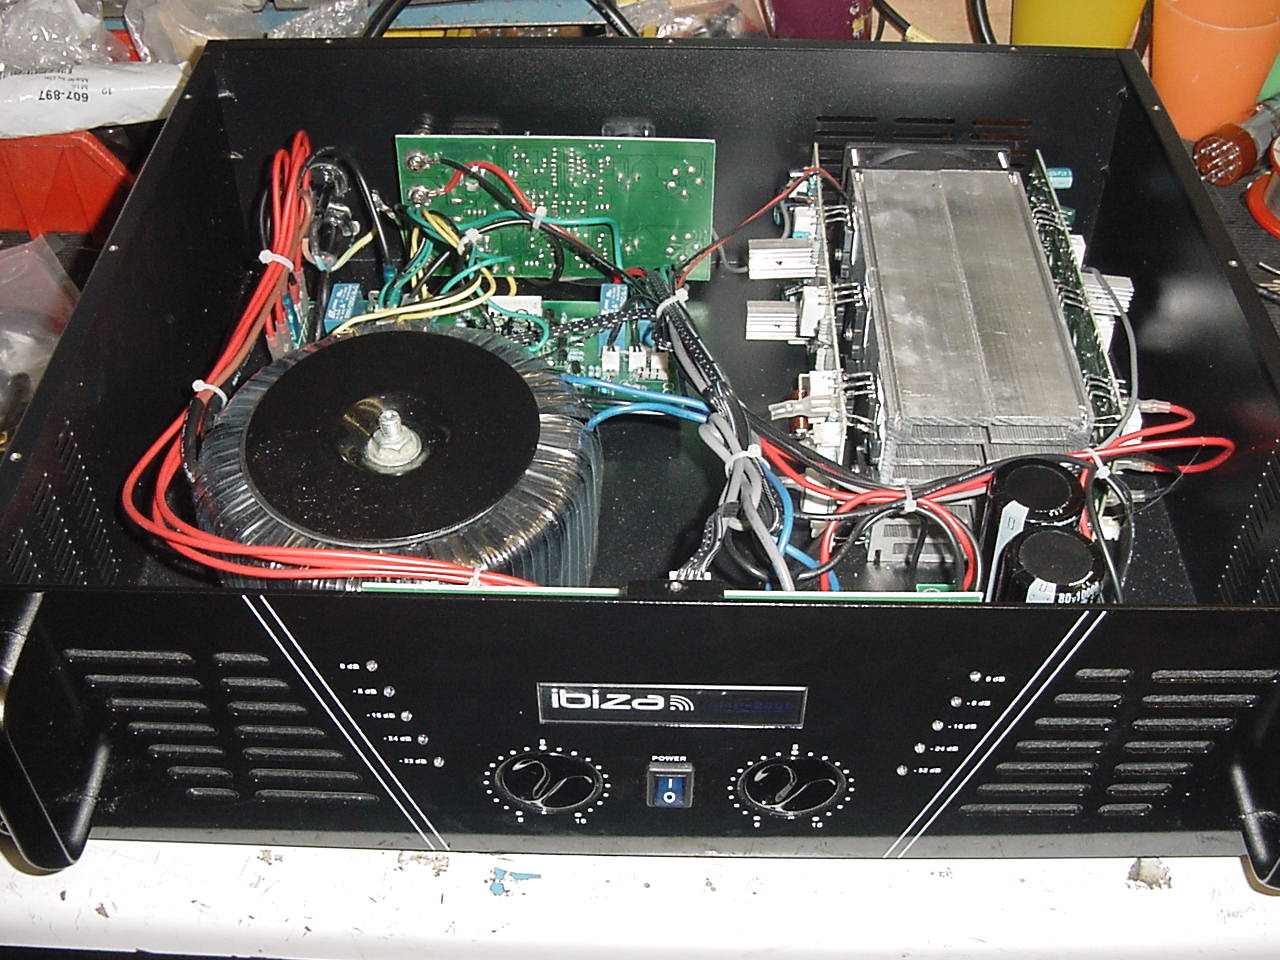 85 2000 Rms Amps Car Amplifiers Faq Get Quotations New Mb Quart Channel 2 000watt 24volt Truck Bus Rv Bridgeable Mosfet Amplifier See Below The Inside Of I Was Slightly Suspicious 2000w Claims As Each